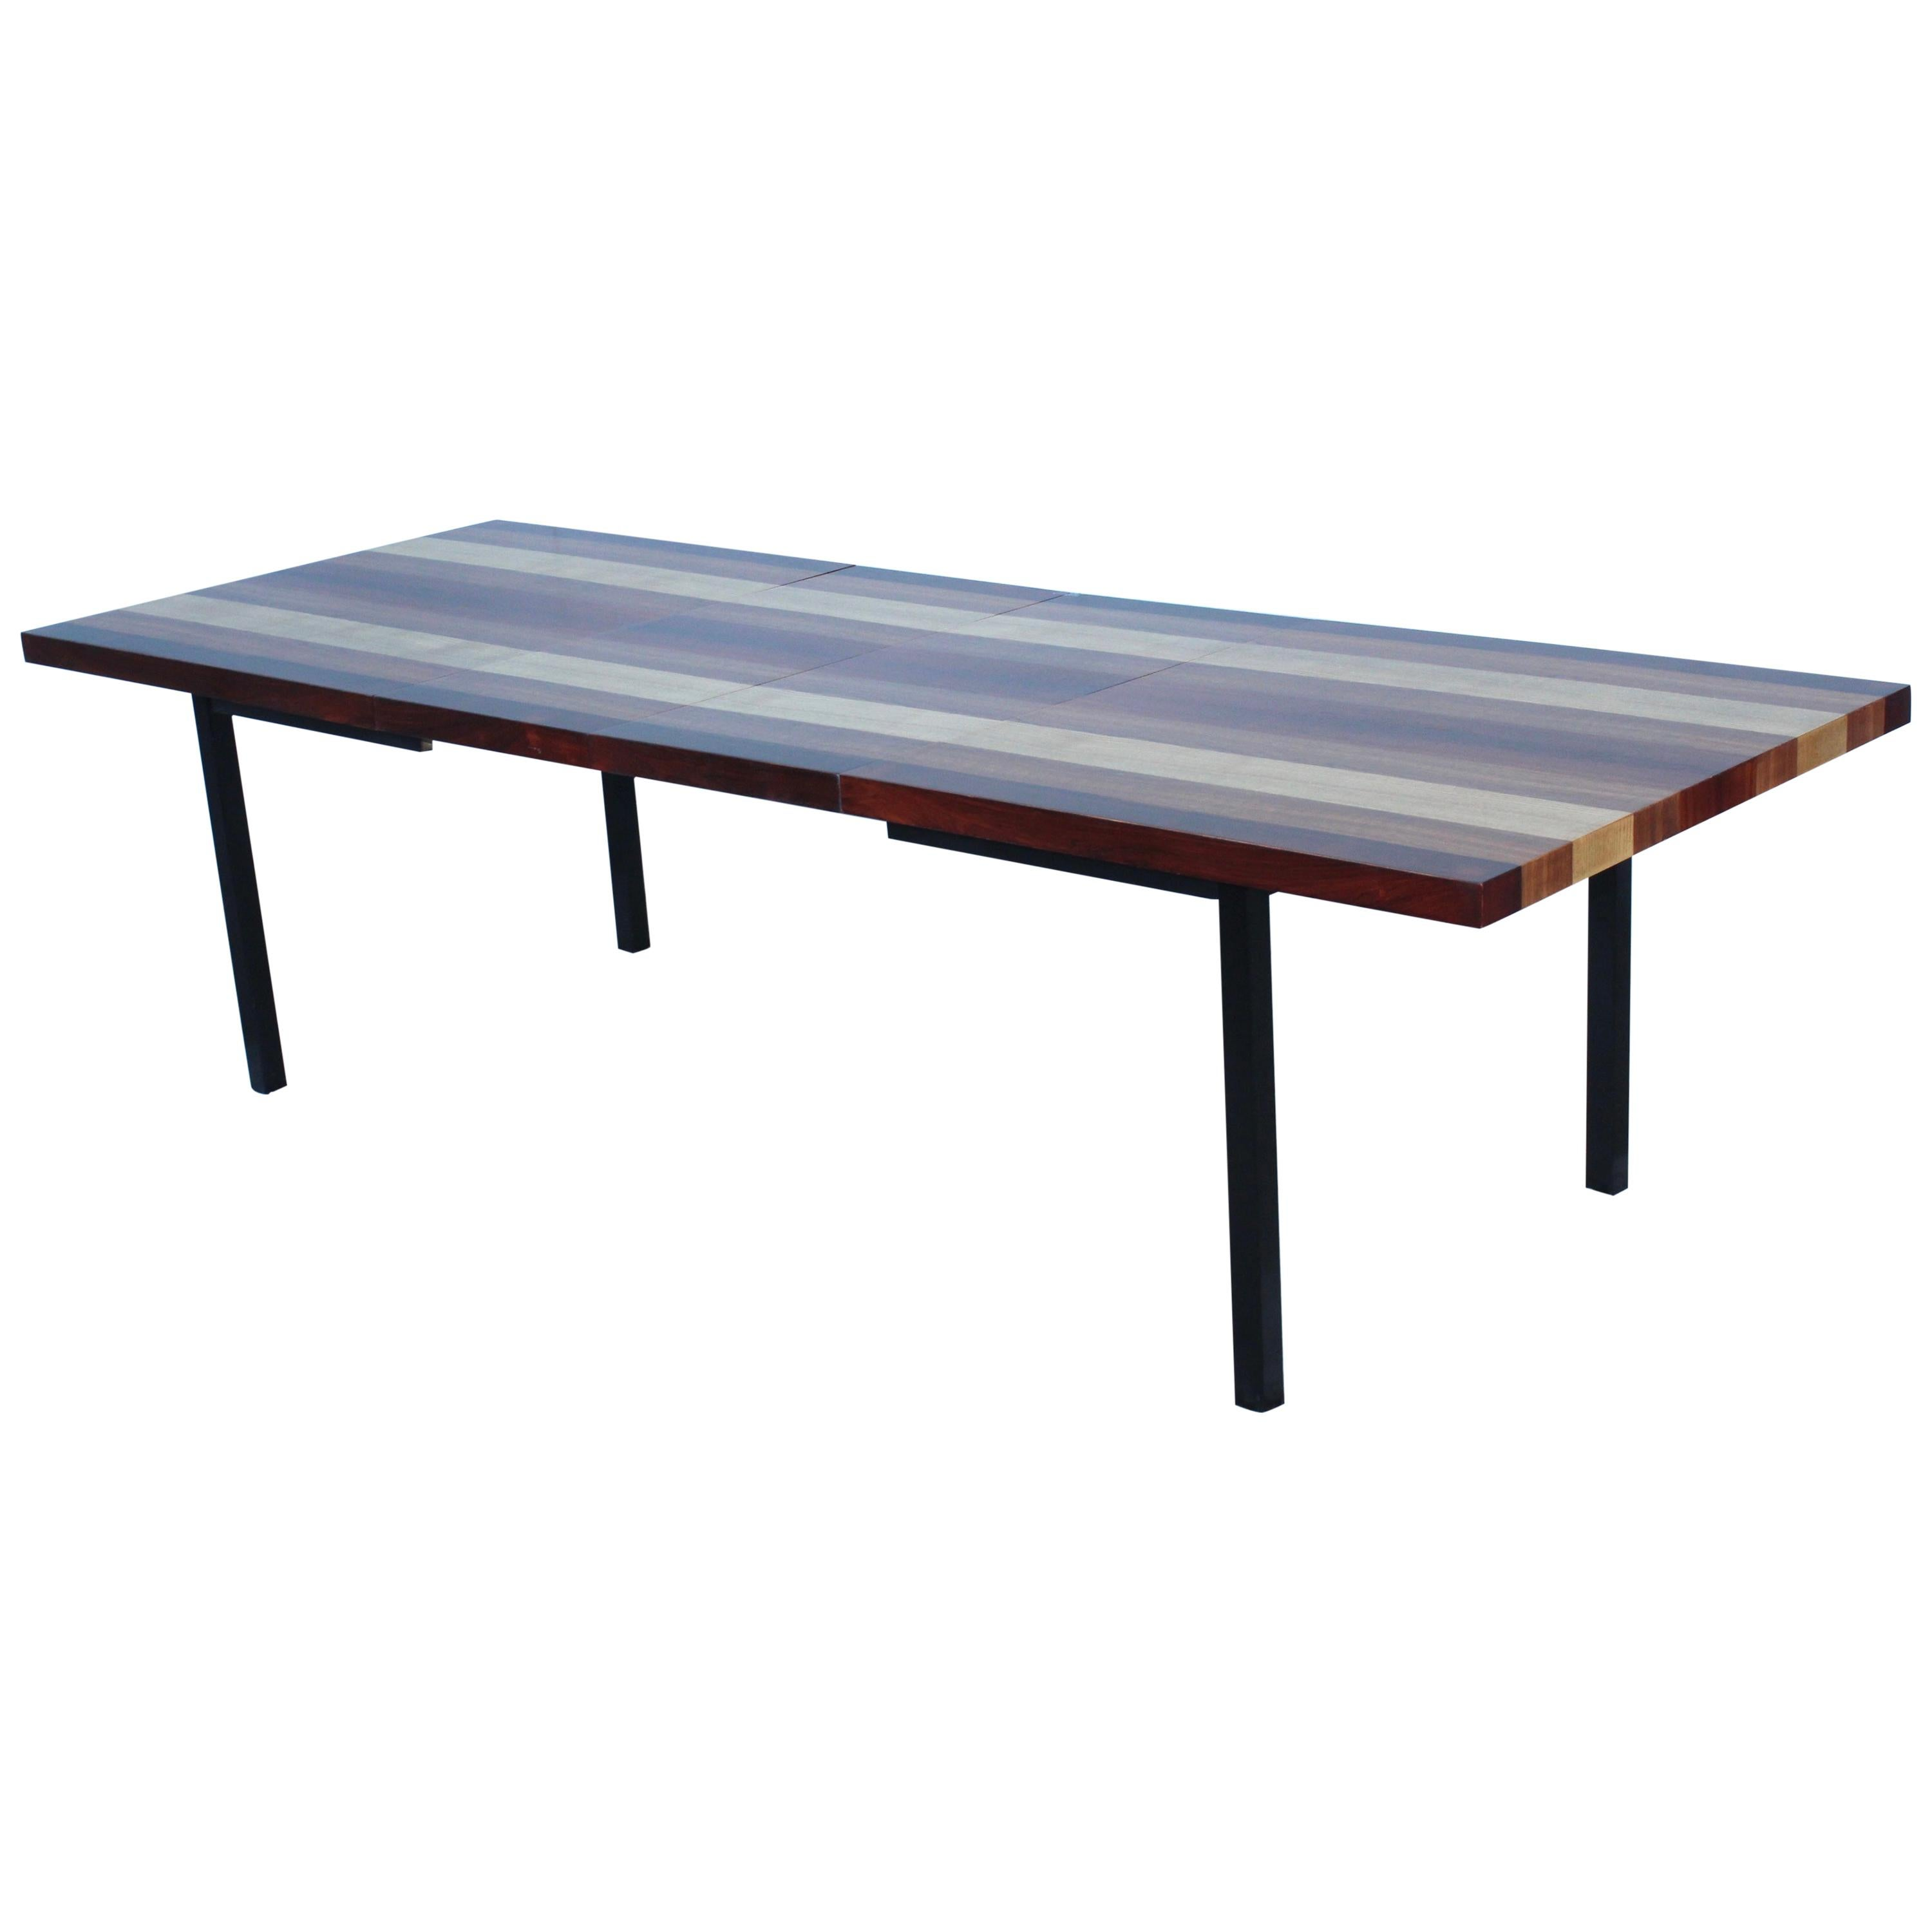 Milo Baughman for Directional Dining Table